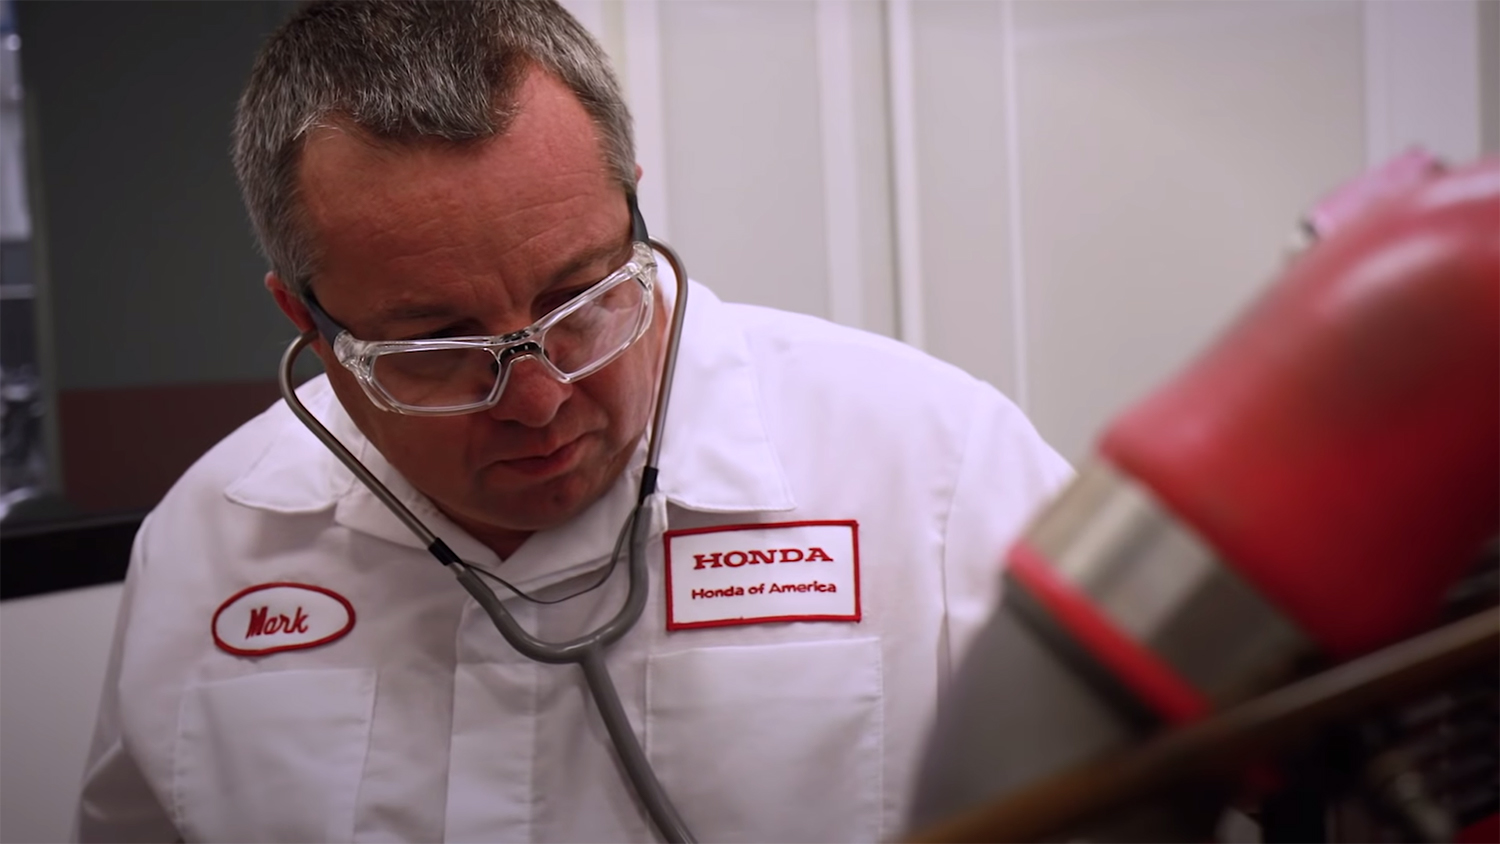 To break in the NSX engine, Acura uses a stethoscope thumbnail